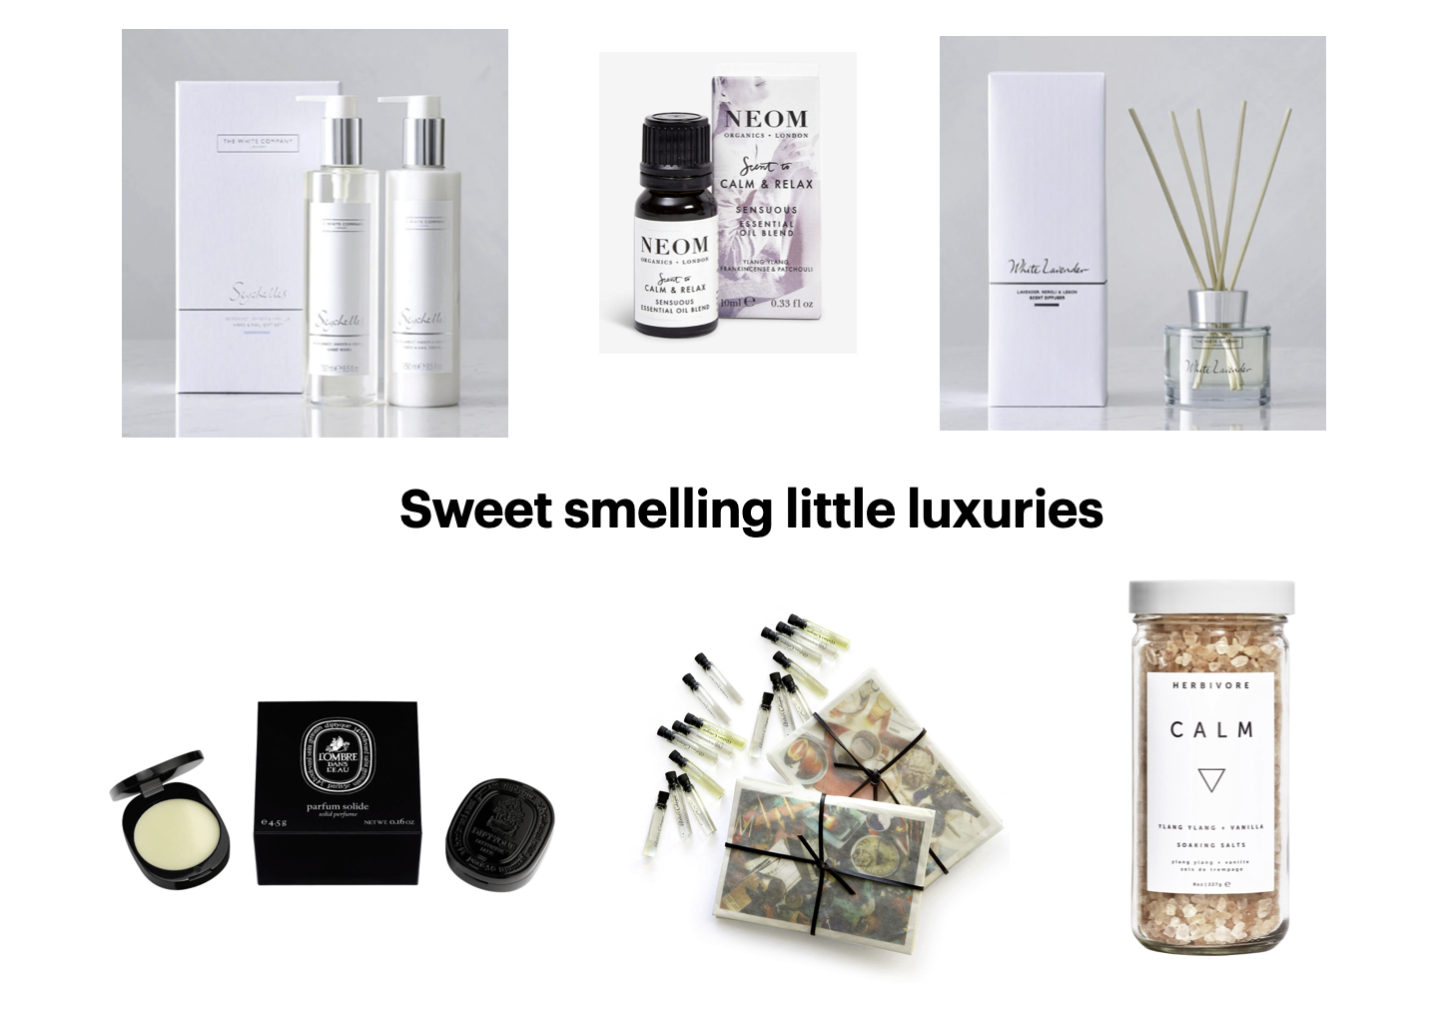 Sweet smelling little luxuries